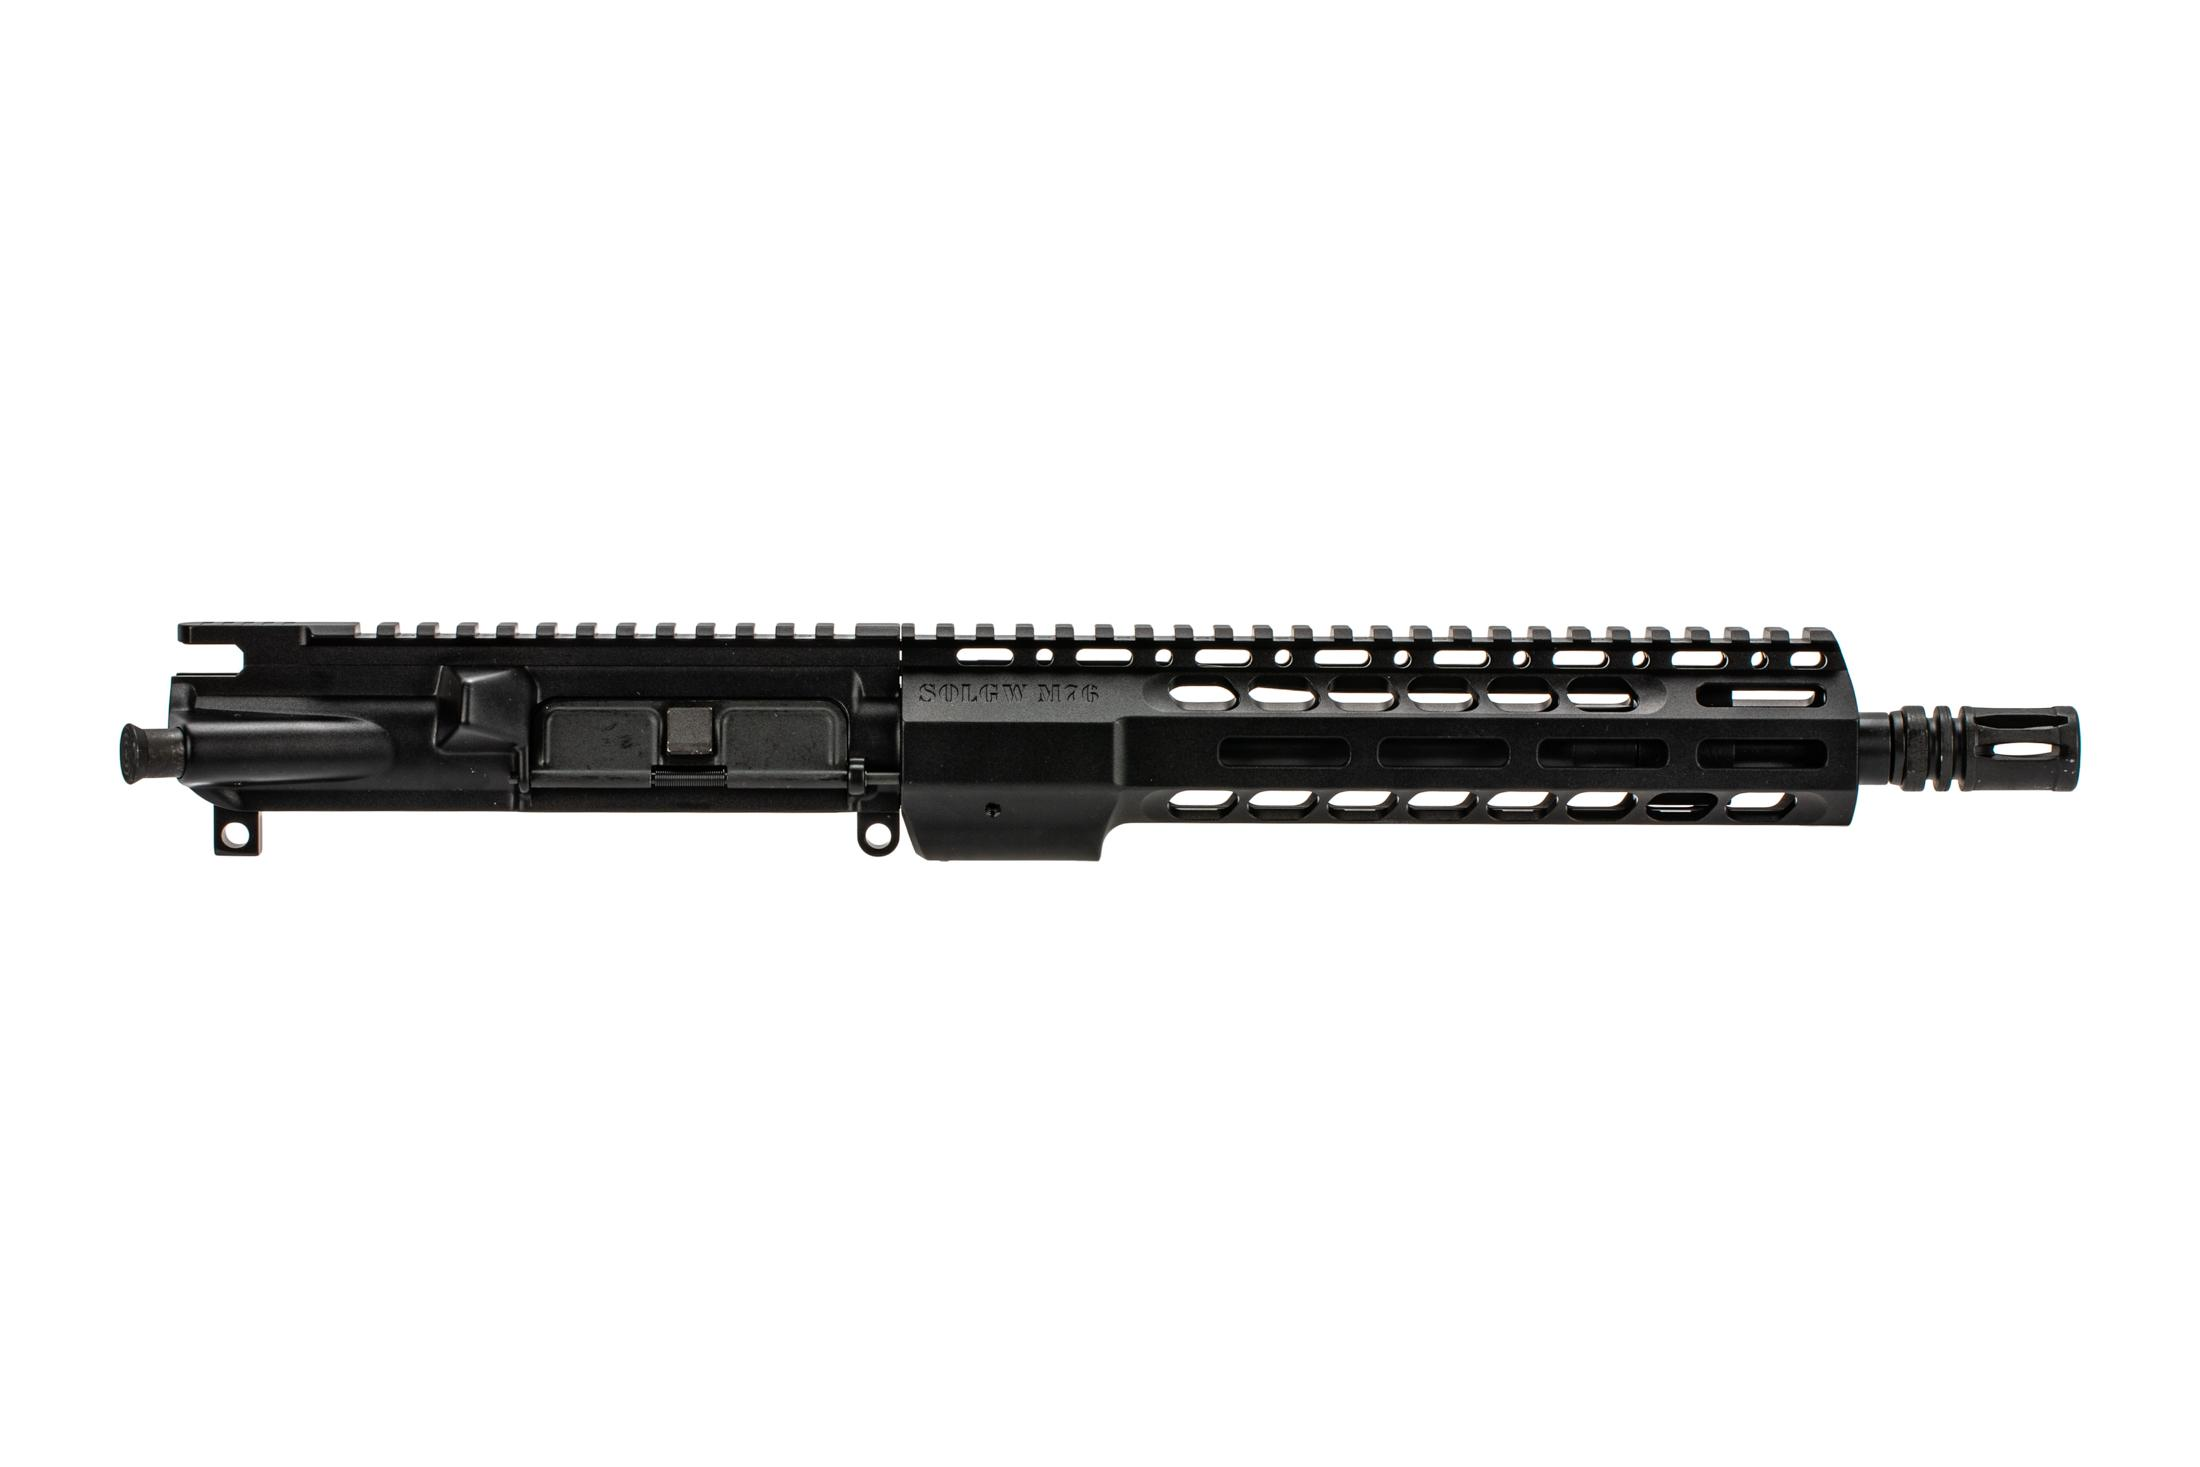 SOLGW 10.5 M4-76 AR-15 barreled upper with Government contour 5.56 barrel and MLOK handguard